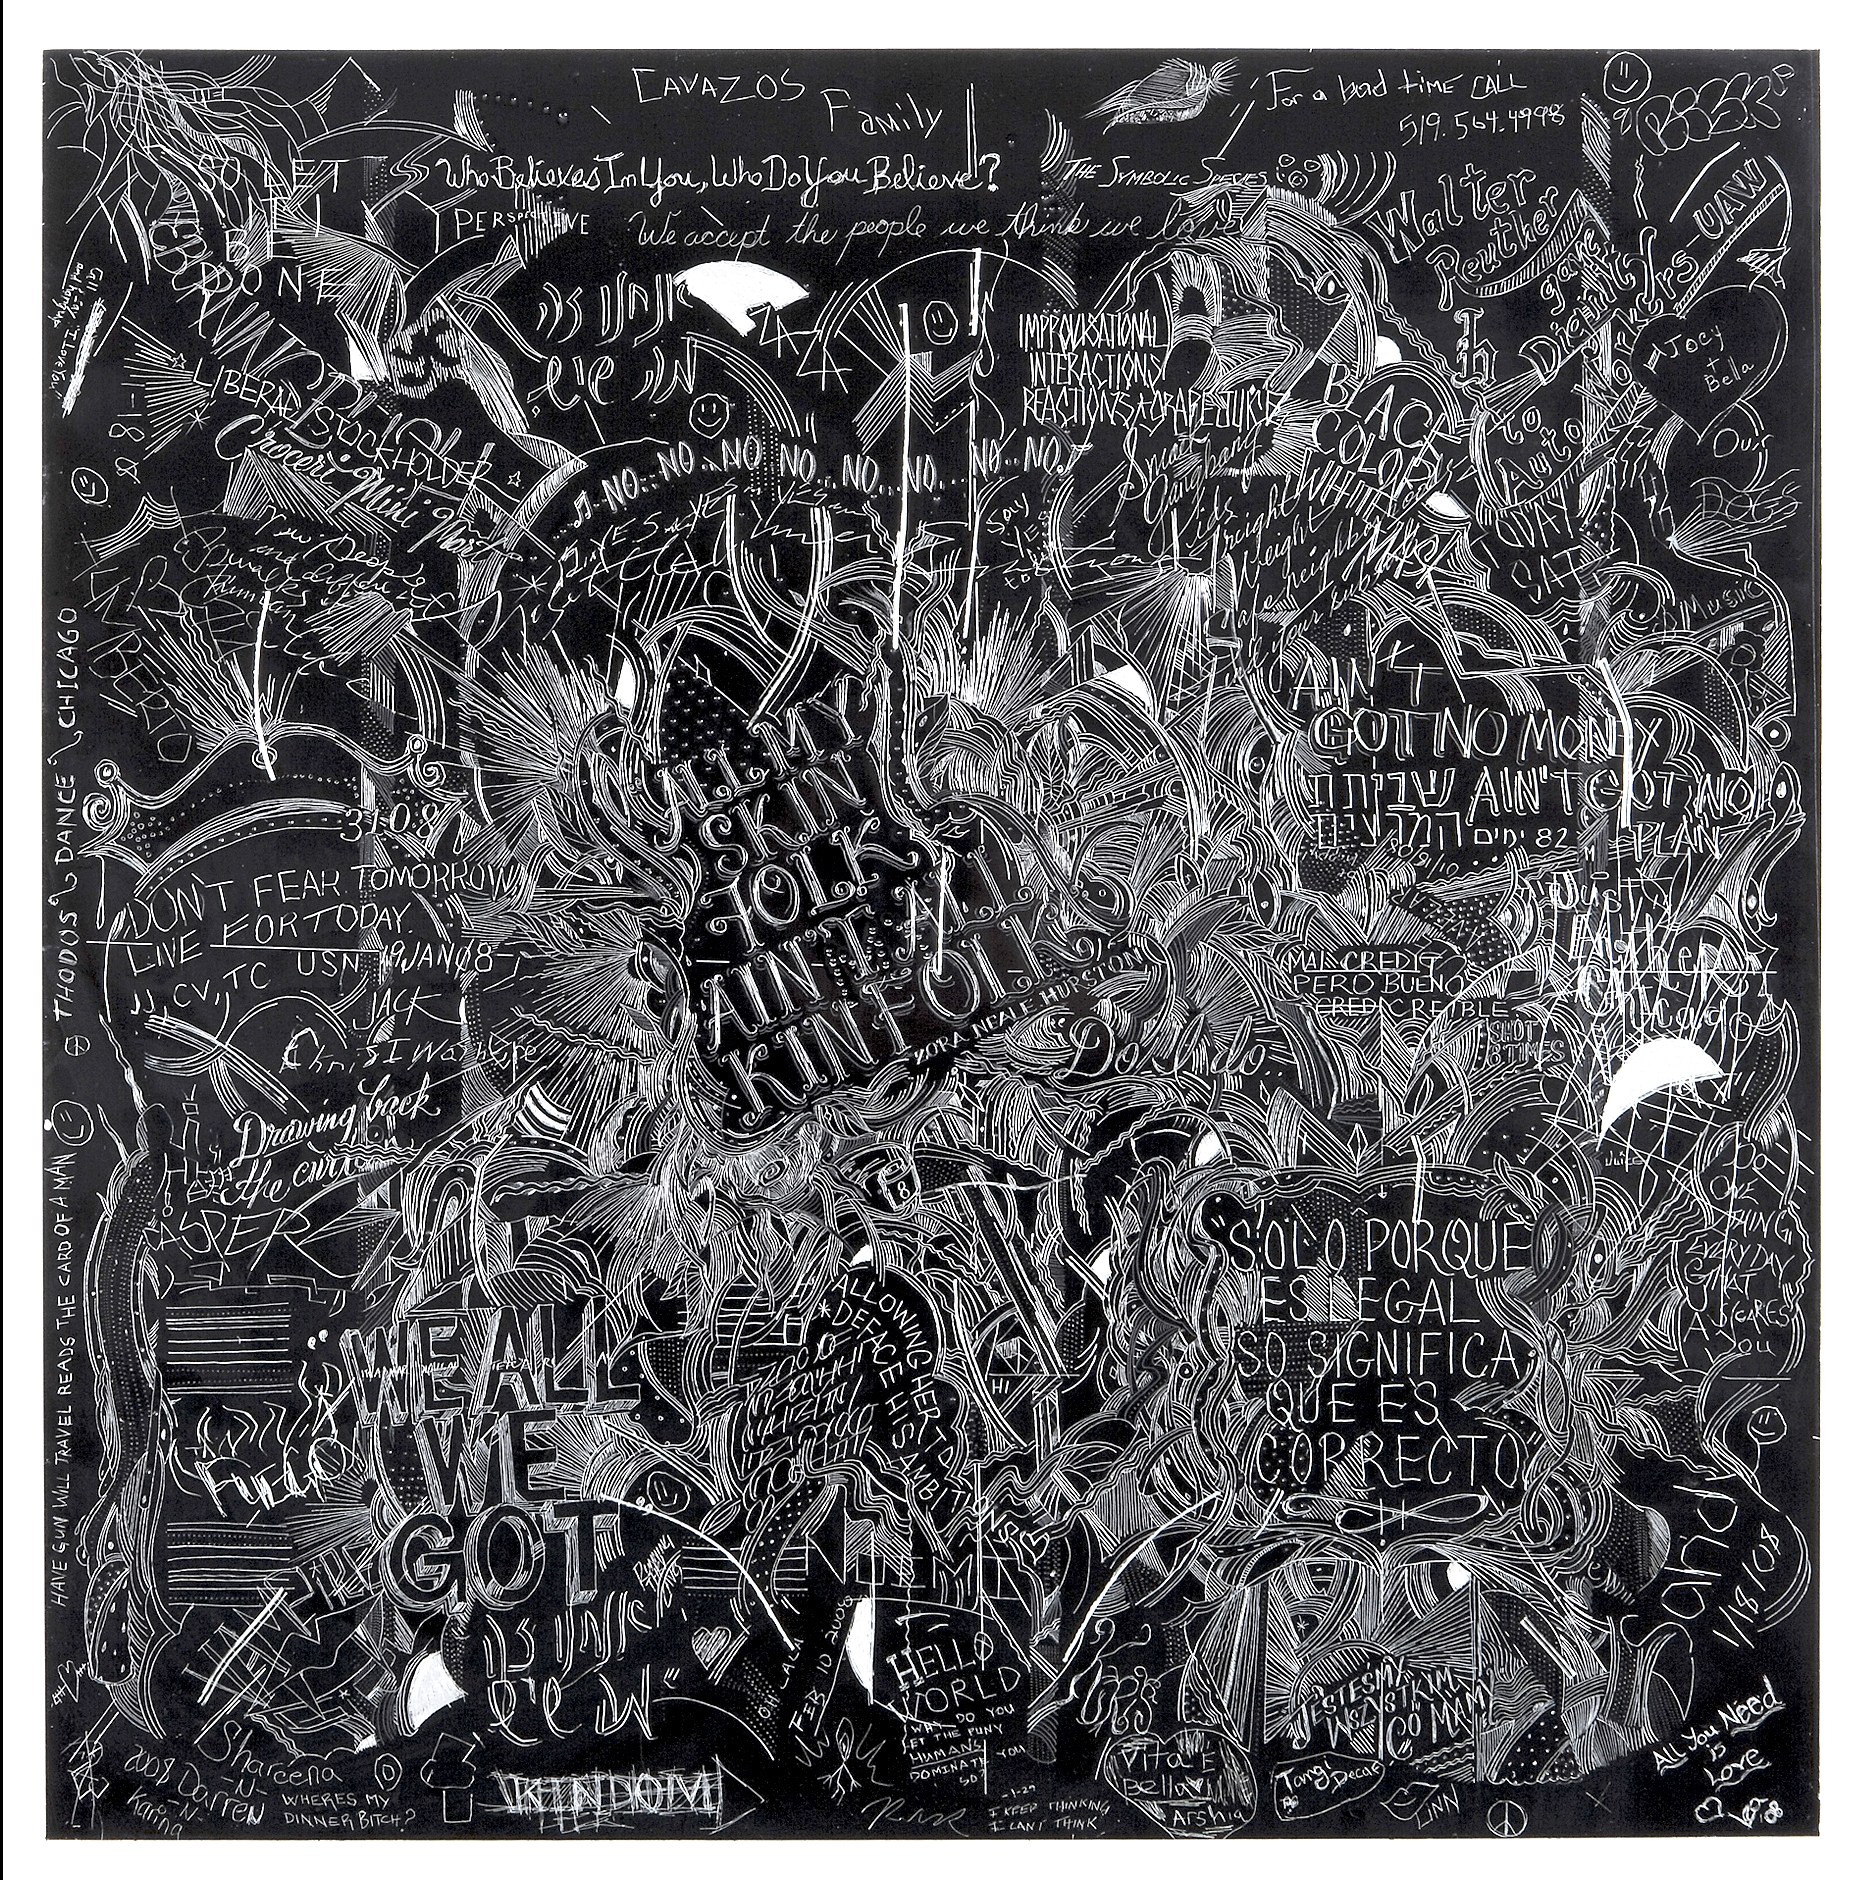 MCA 6,Collaborative incised drawings on aluminum with baked enamel finish made w/ the Museum of Contemporary Art Chicago's visitors and staff, 24 X 24 inches, 2008